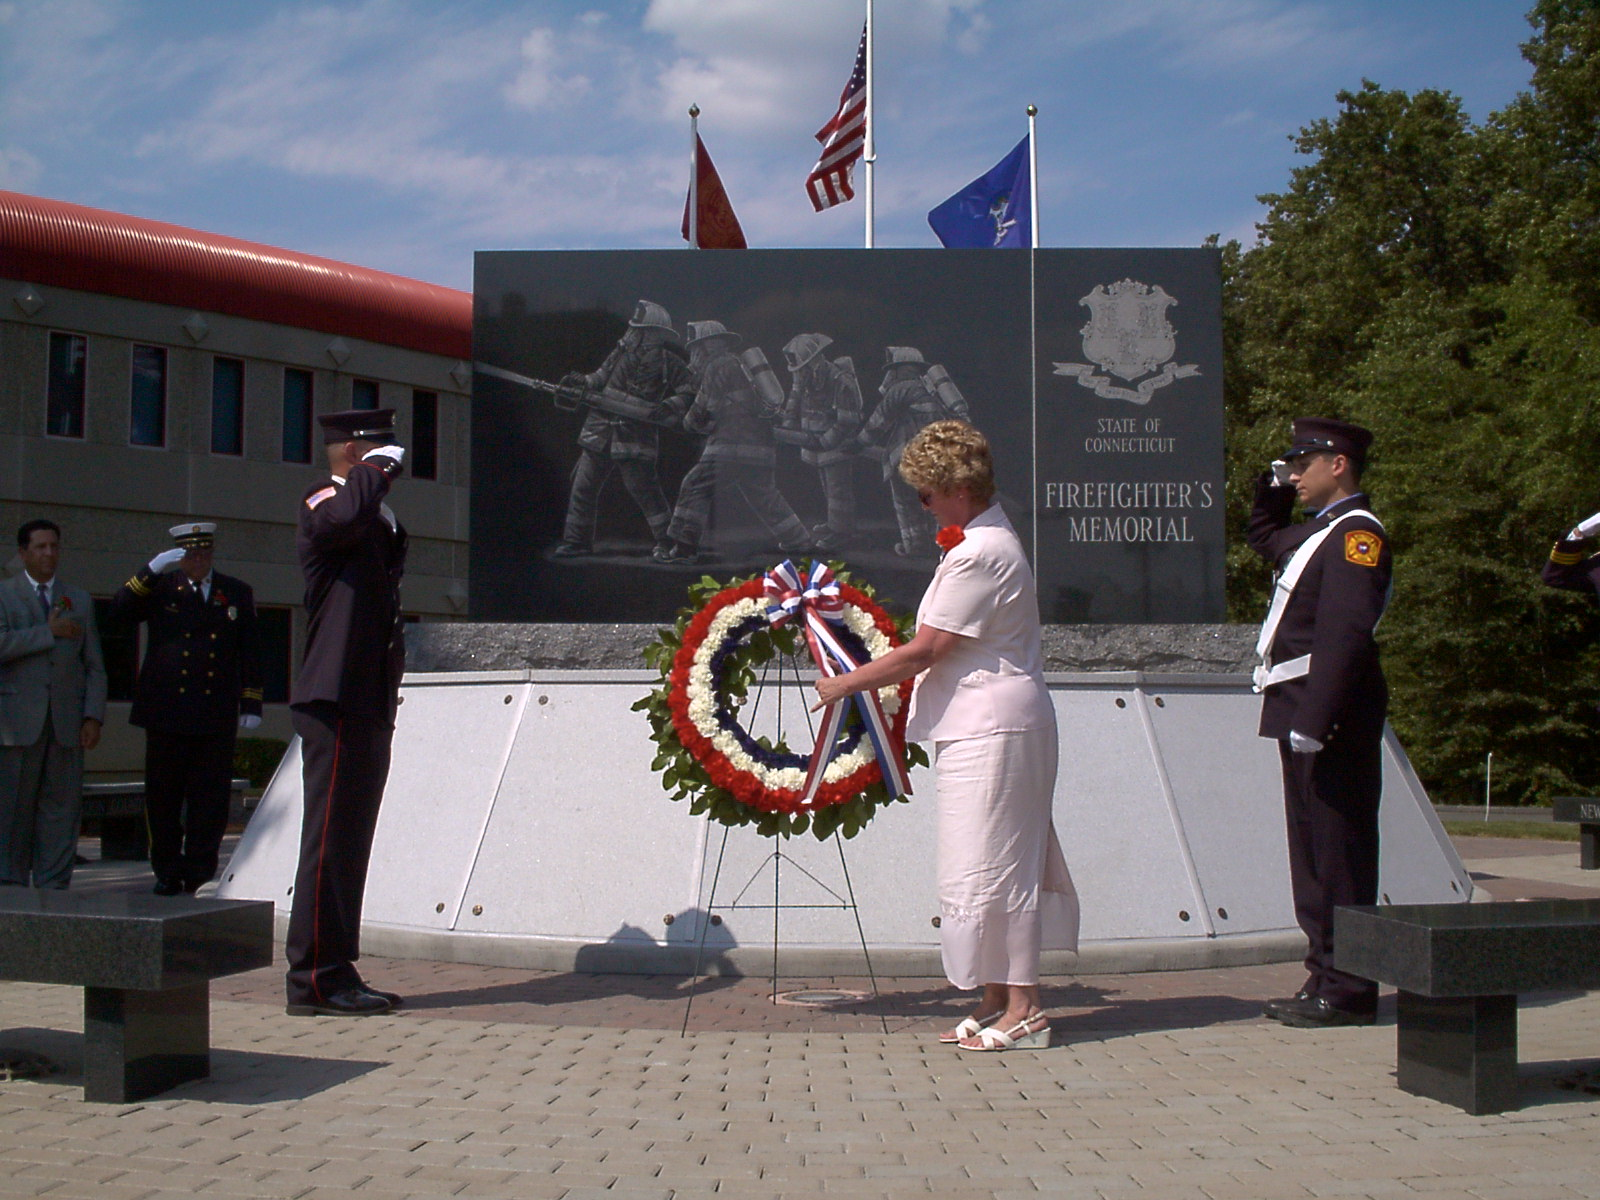 FF Memorial Dedication